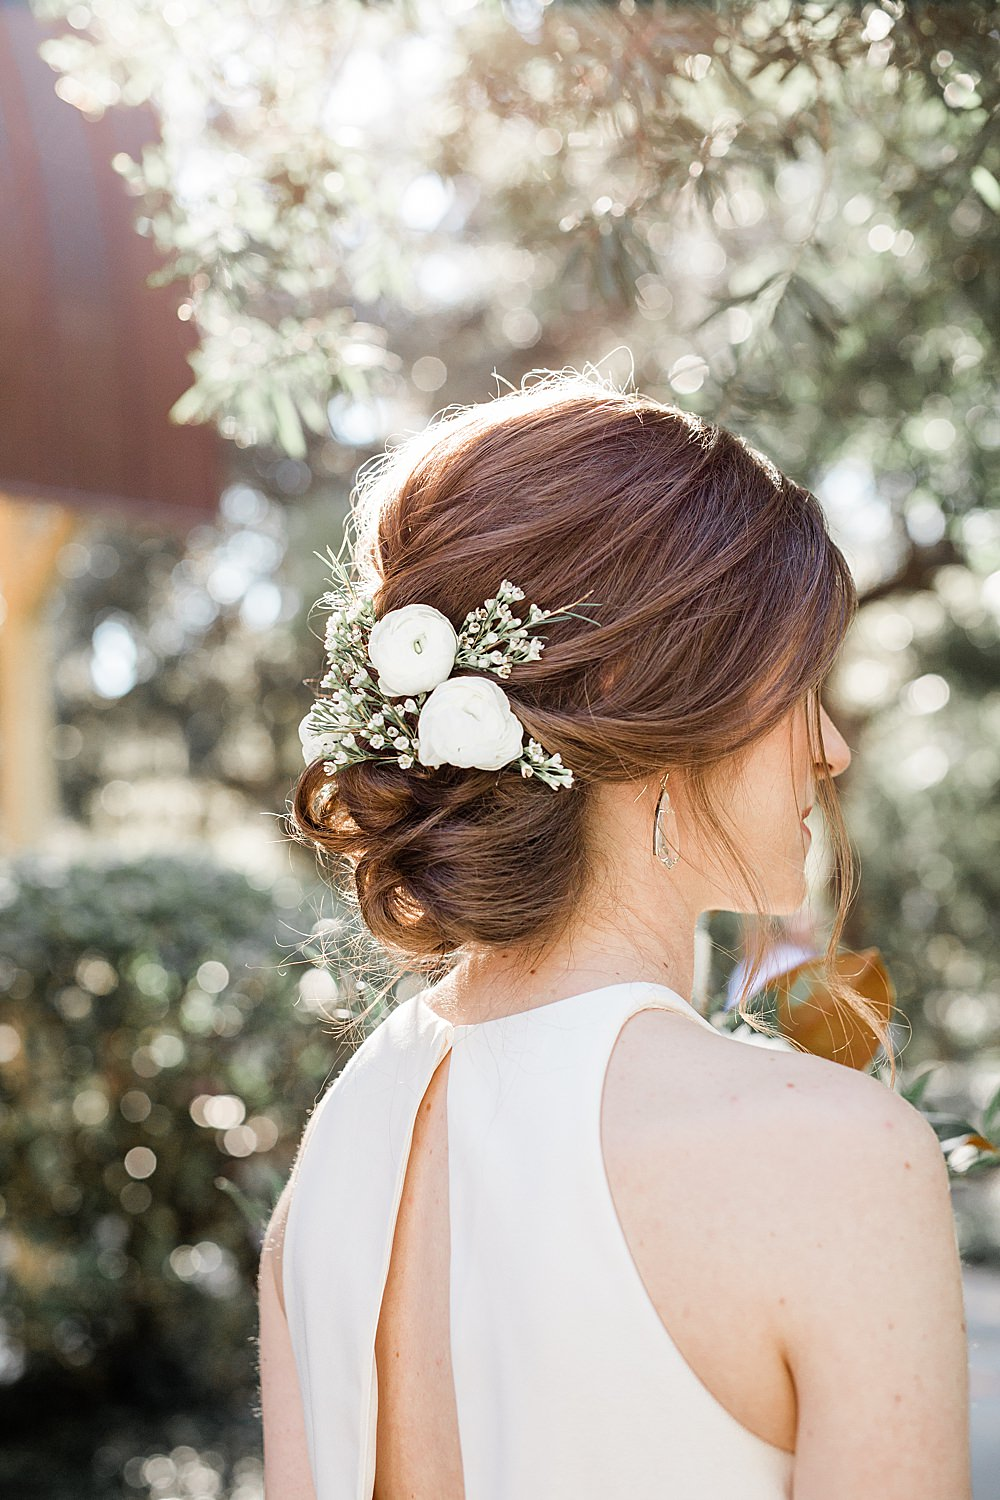 White and Green florals placed in messy bun for bride's hairdo